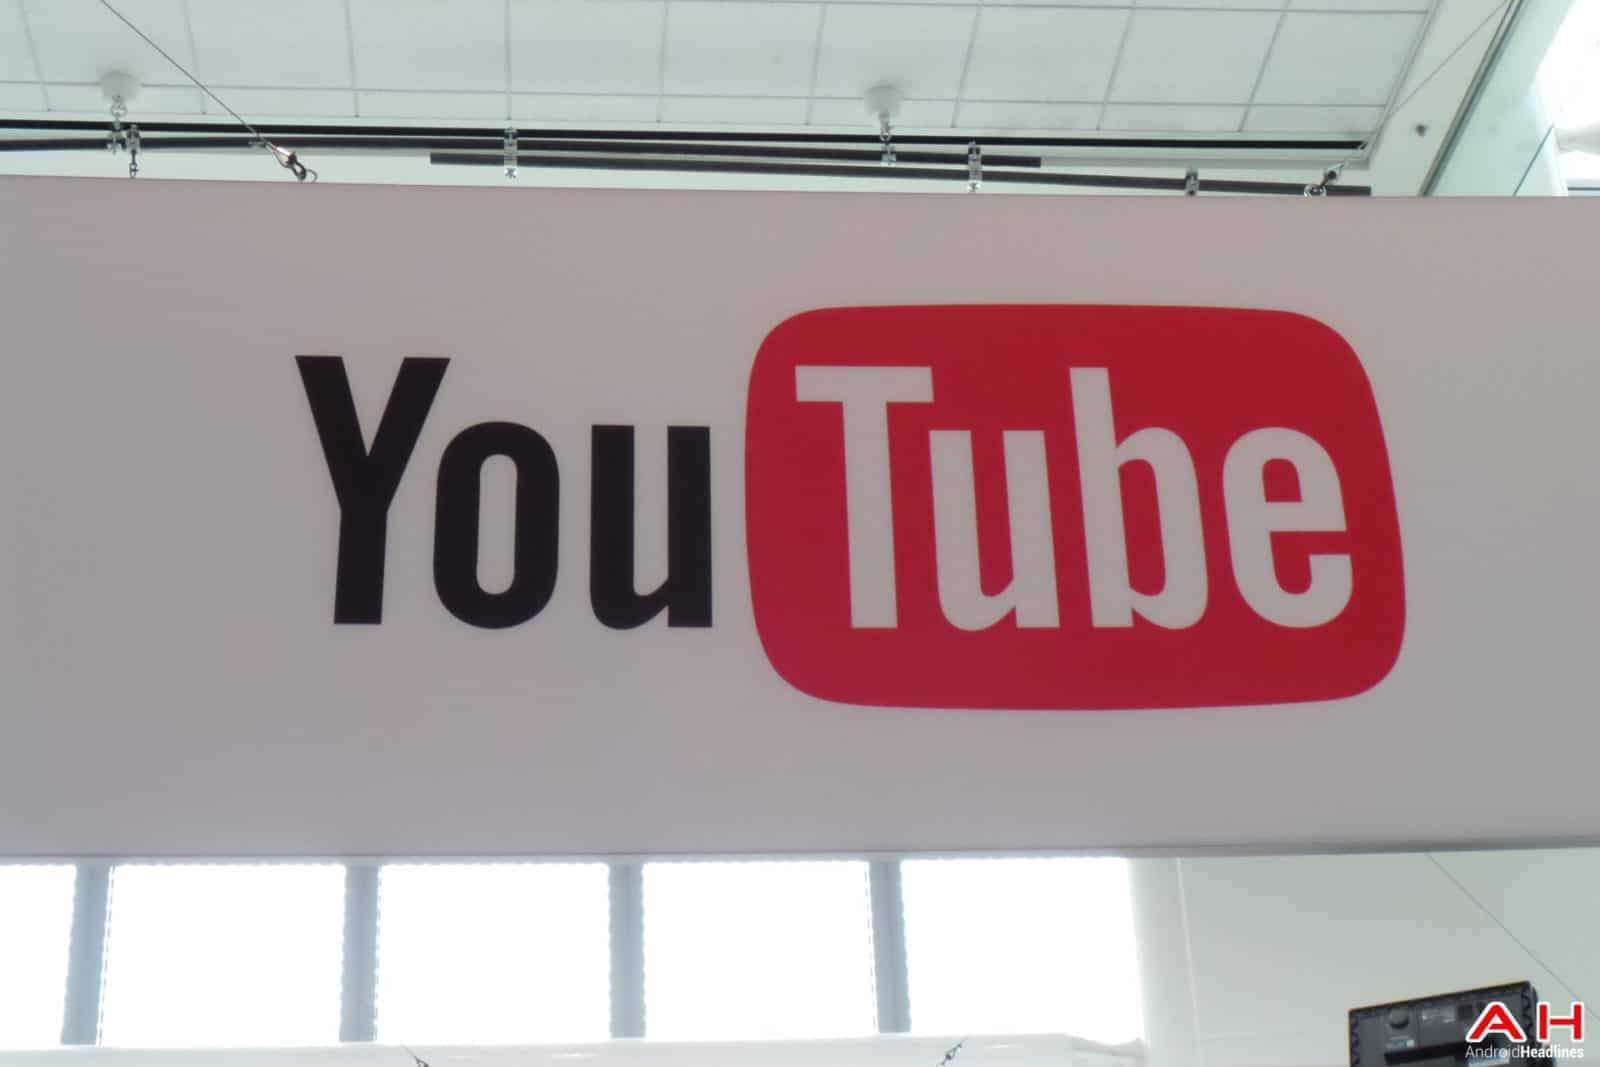 AH Google IO-1427 Youtube logo and isgn